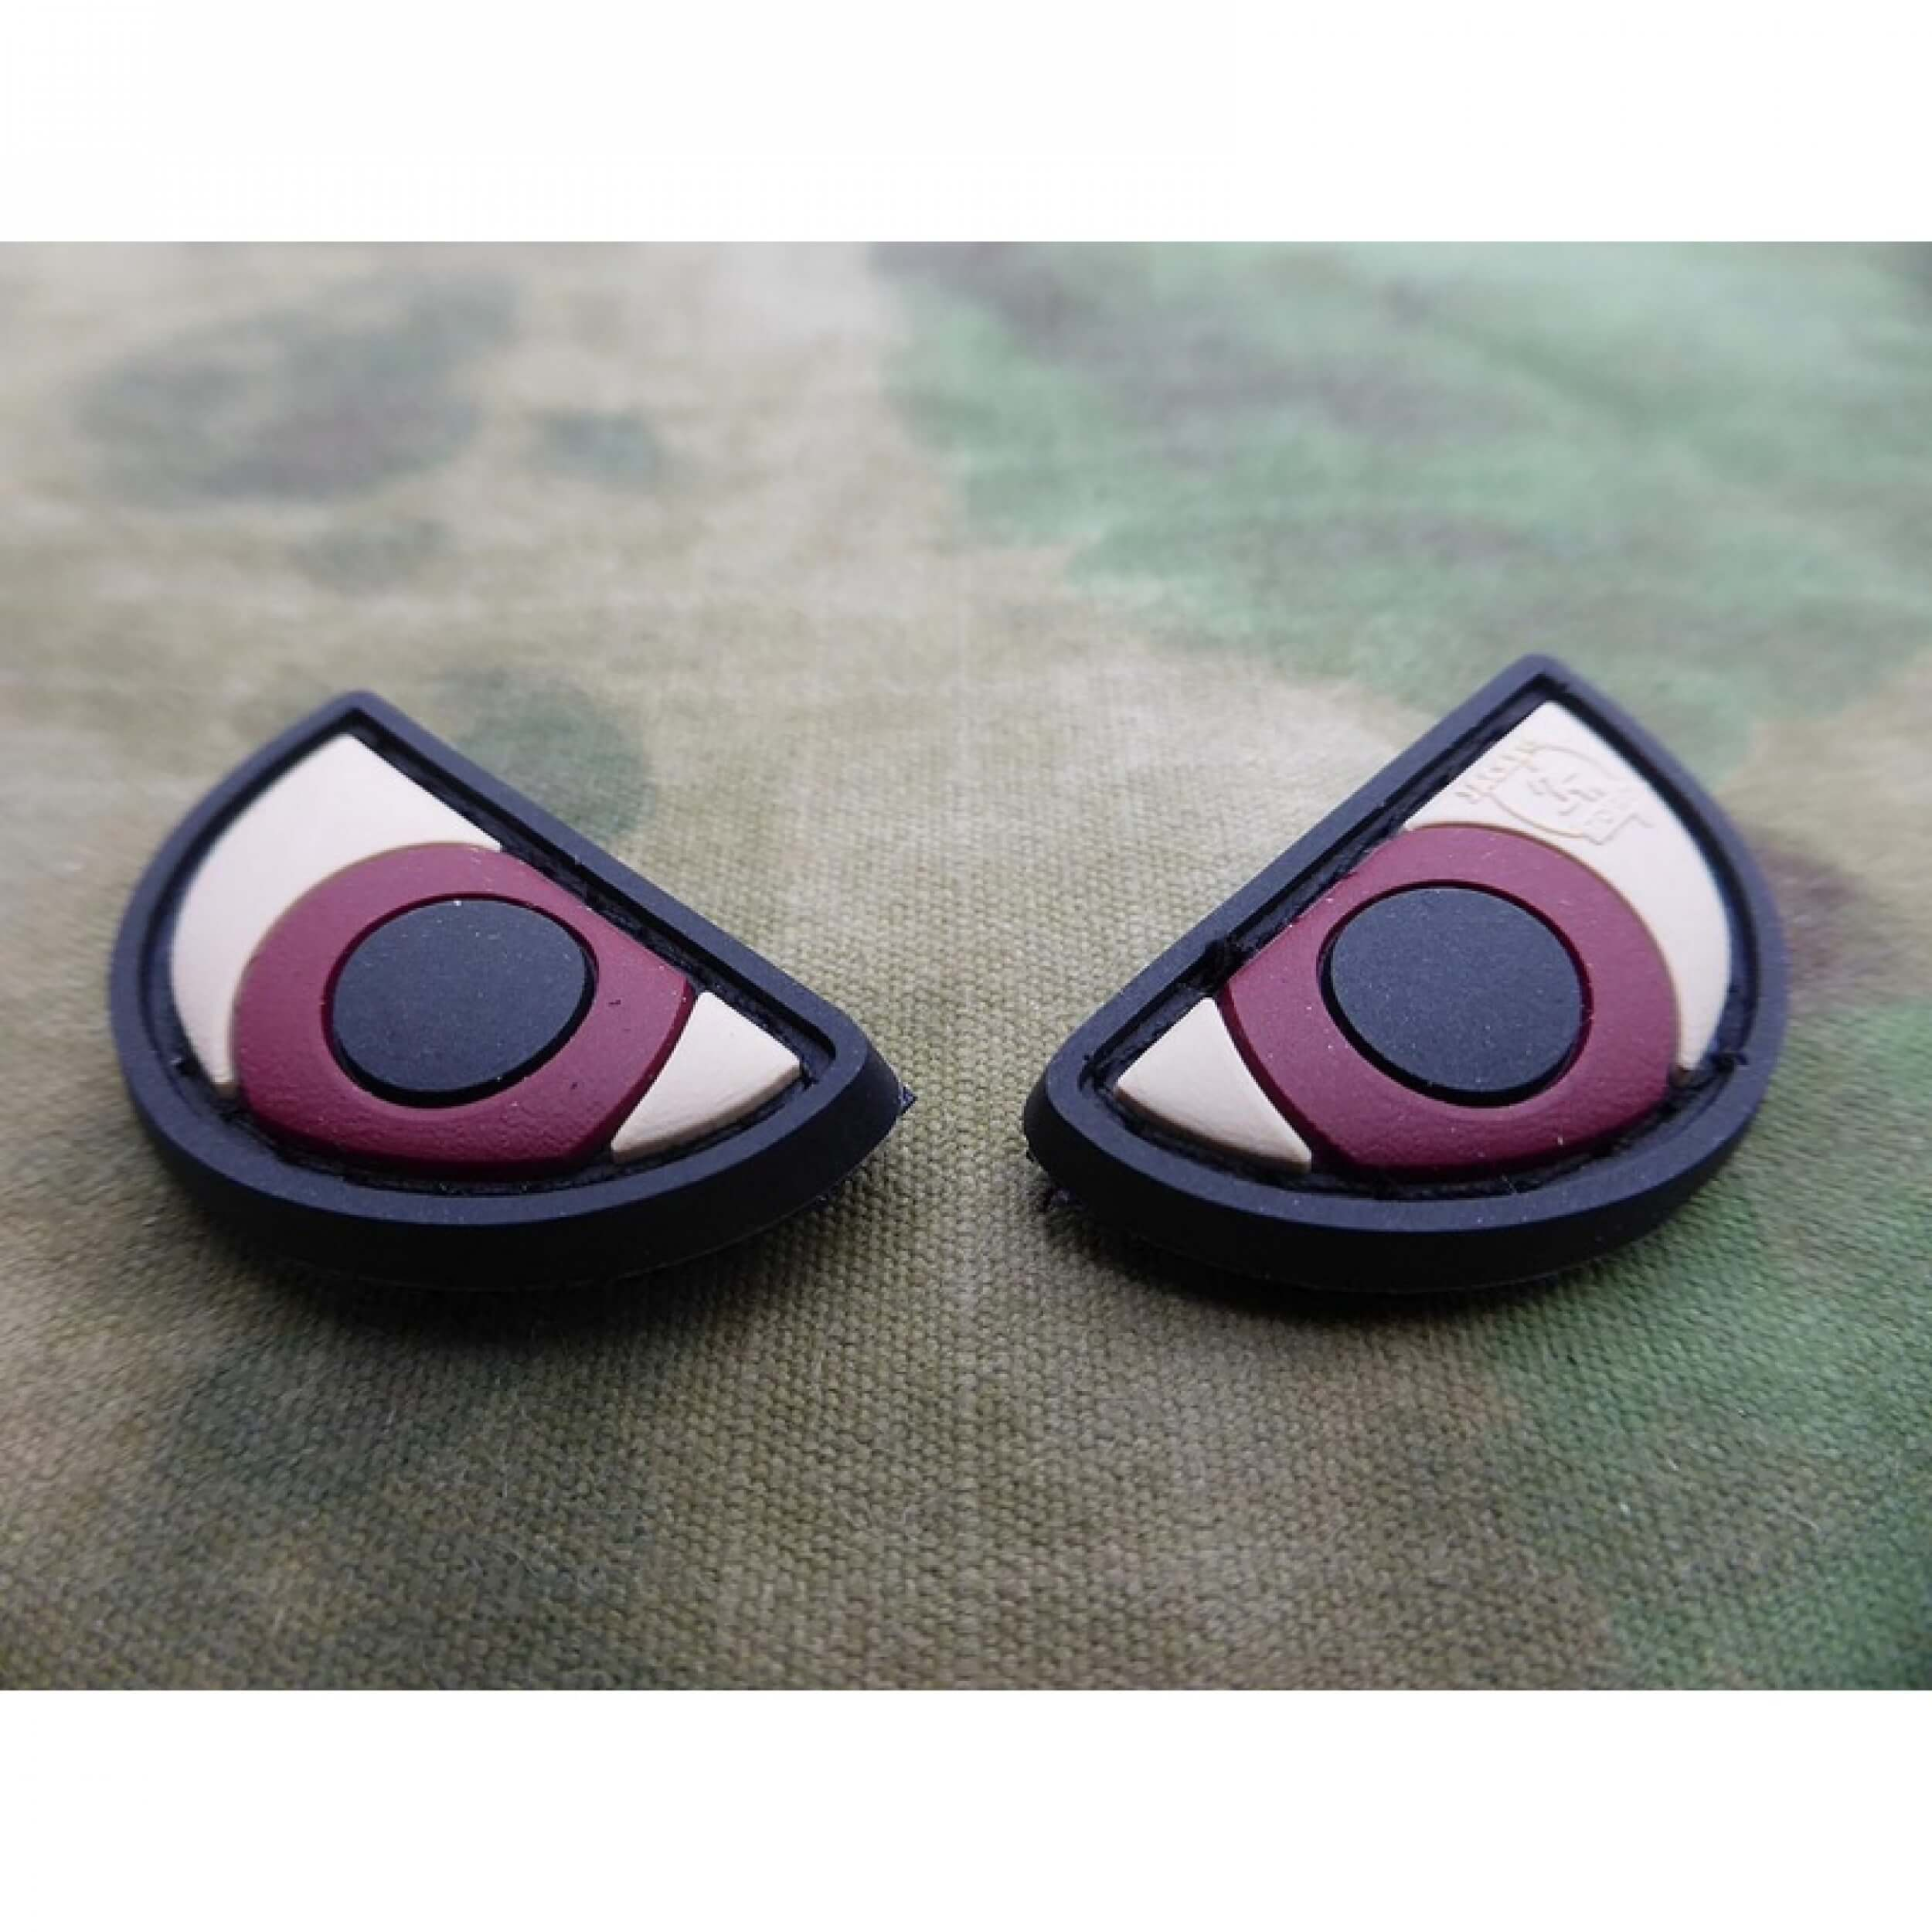 JTG Angry Eyes Patch Set, fullcolor / 3D Rubber Patch